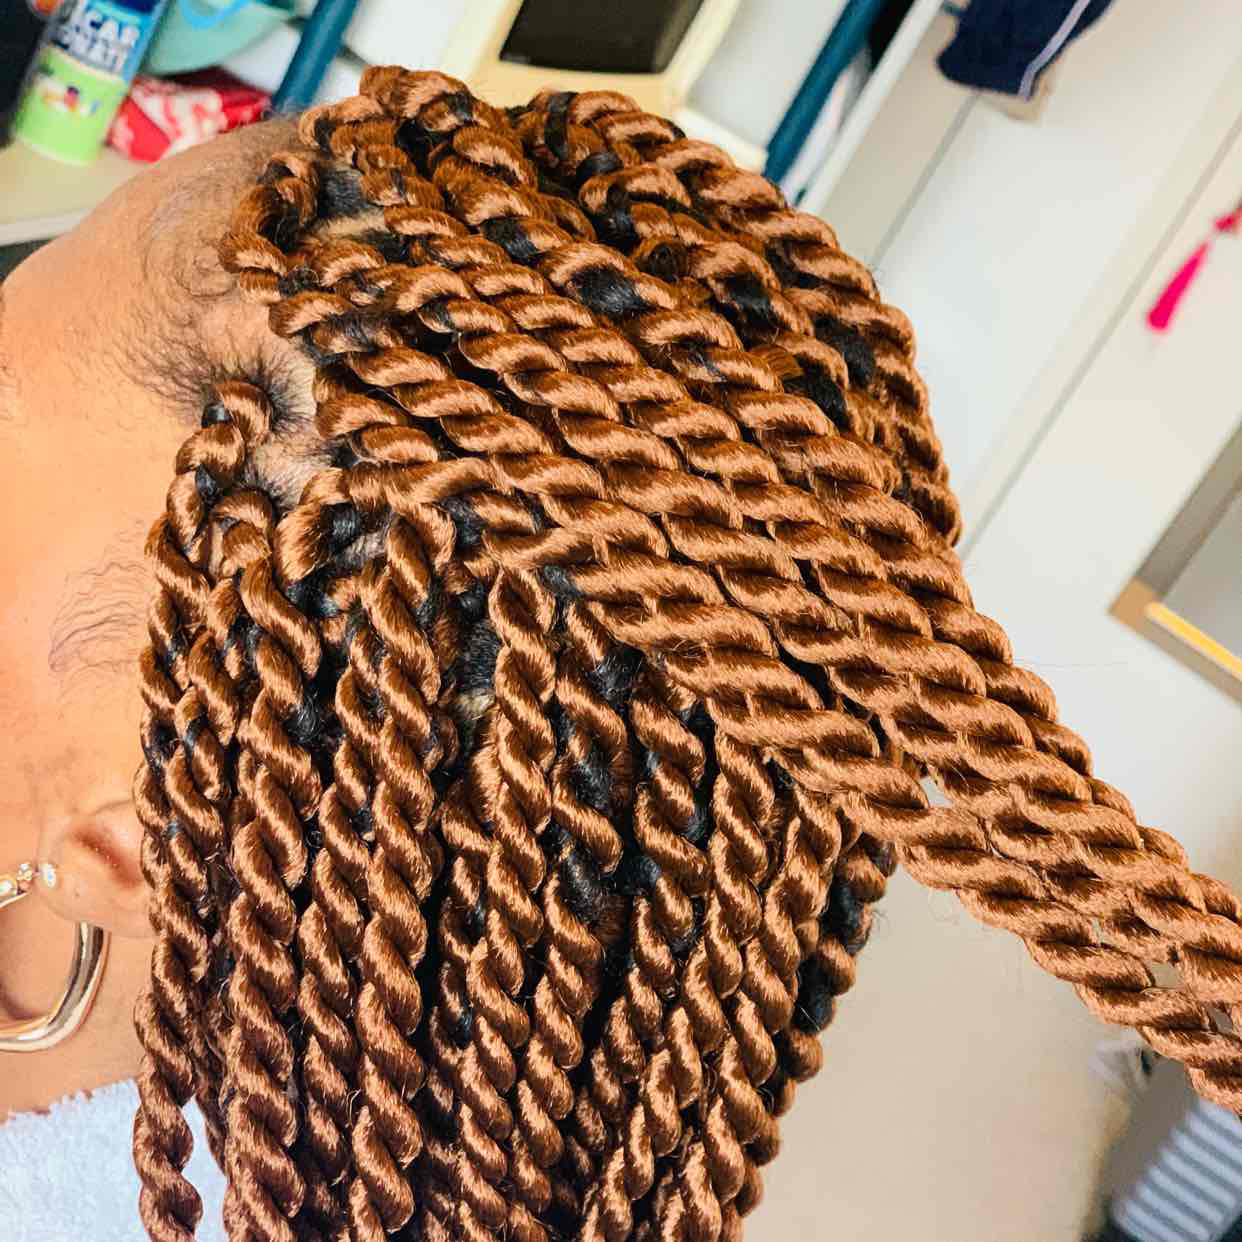 salon de coiffure afro tresse tresses box braids crochet braids vanilles tissages paris 75 77 78 91 92 93 94 95 SLVGQWPE